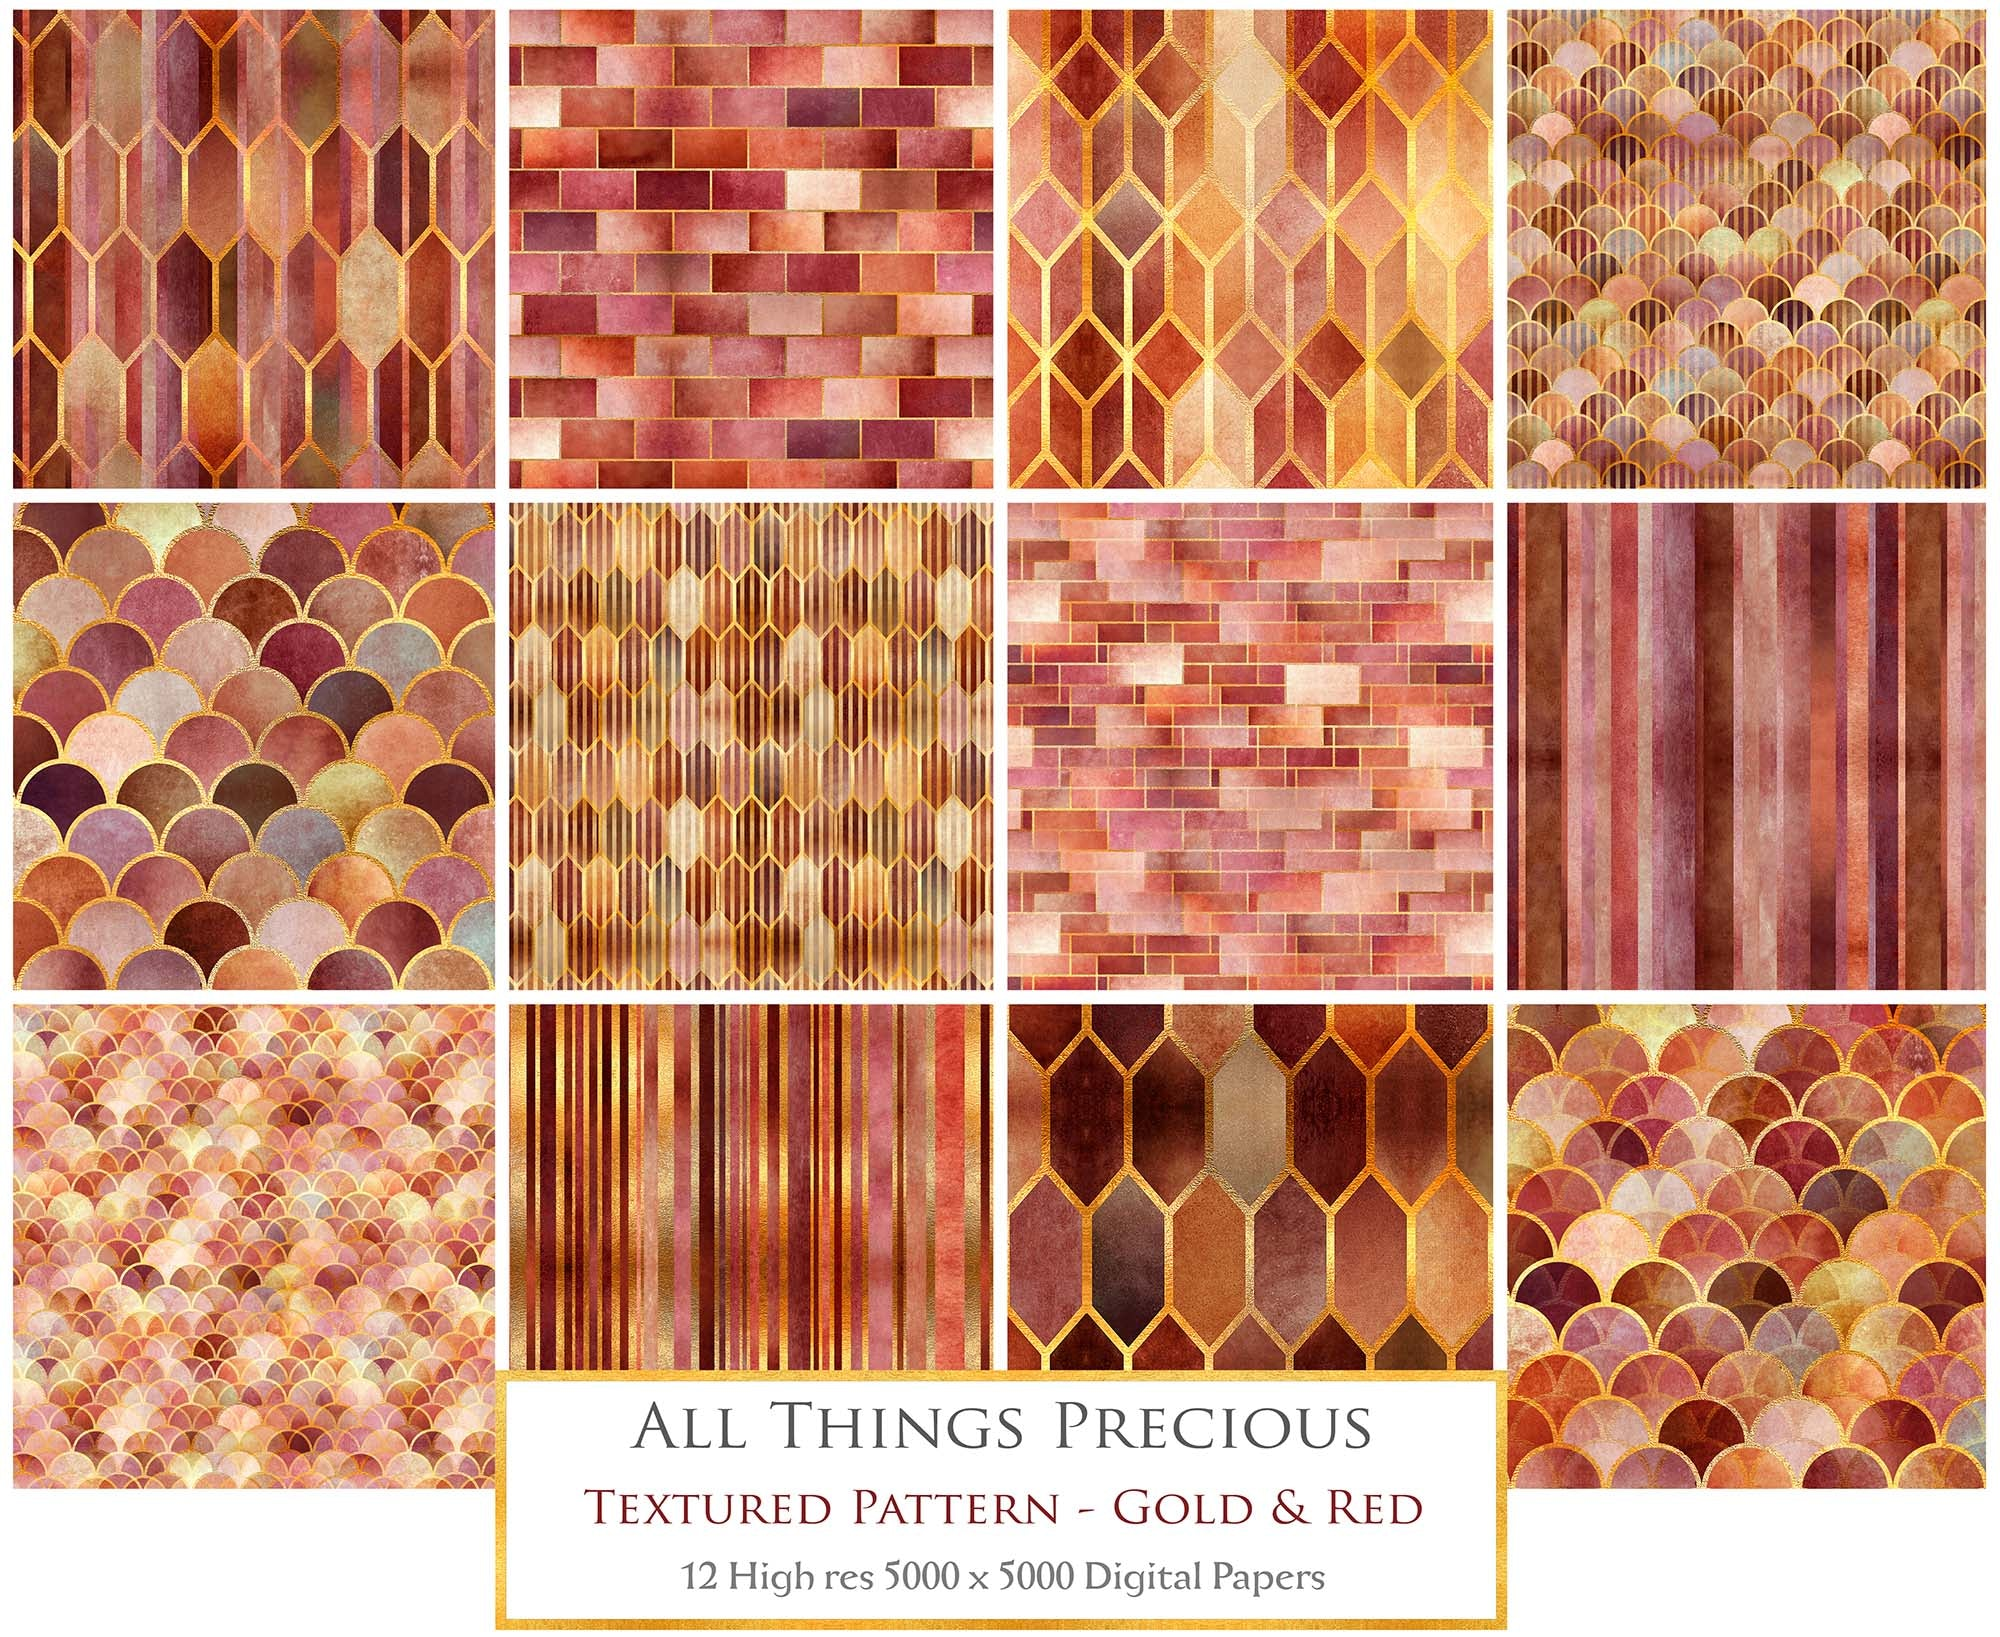 TEXTURED PATTERN Gold & Red - Digital Papers